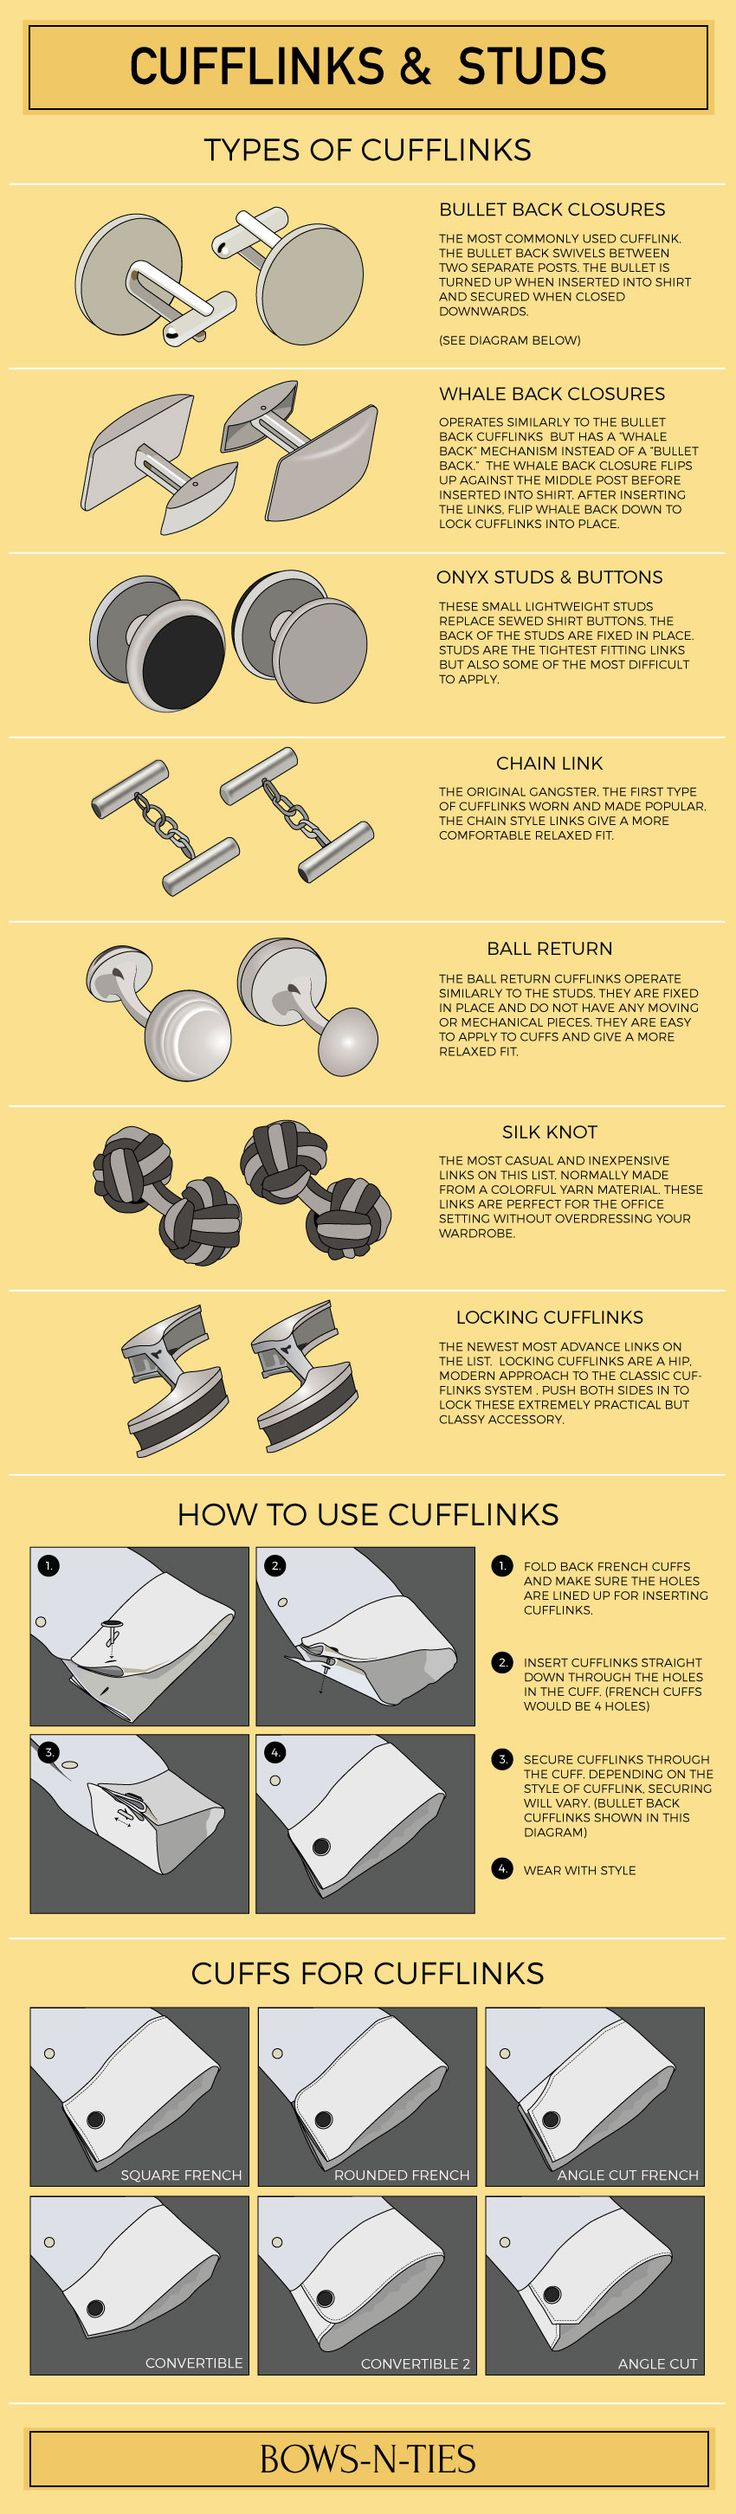 cufflinks infographic - Google Search                                                                                                                                                      More